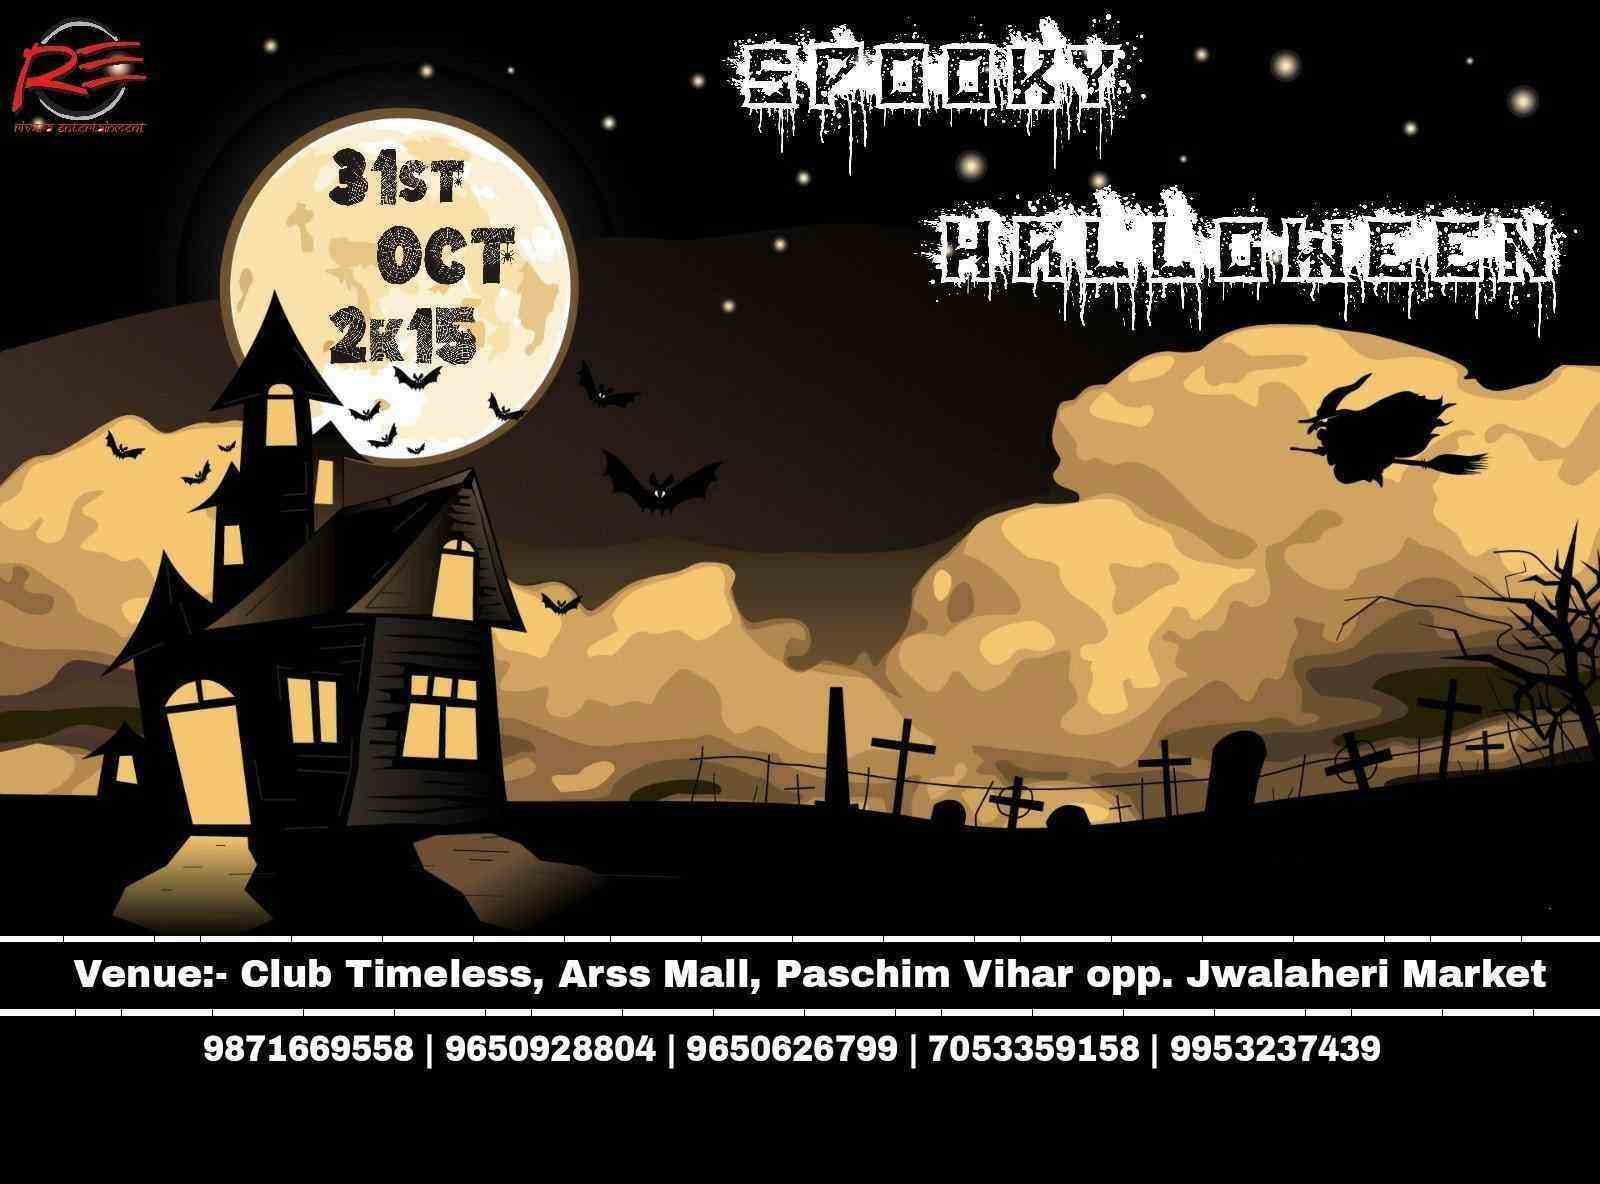 Halloween Hungama : Top places for Halloween 2015 in India ...